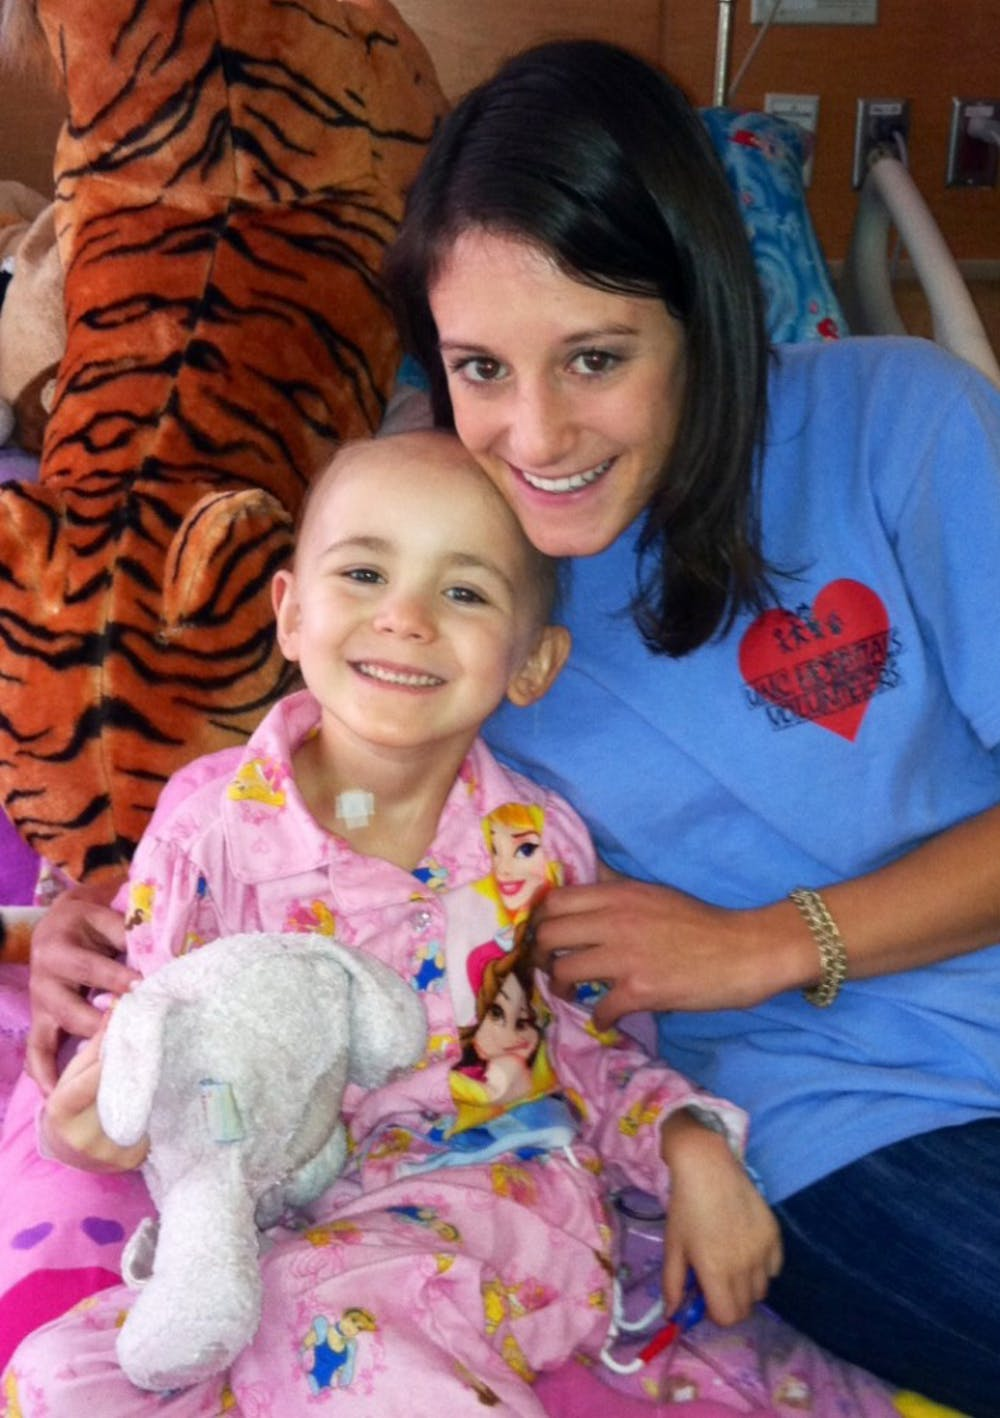 Volunteers pair with pediatric patients at N.C. Children's Hospital